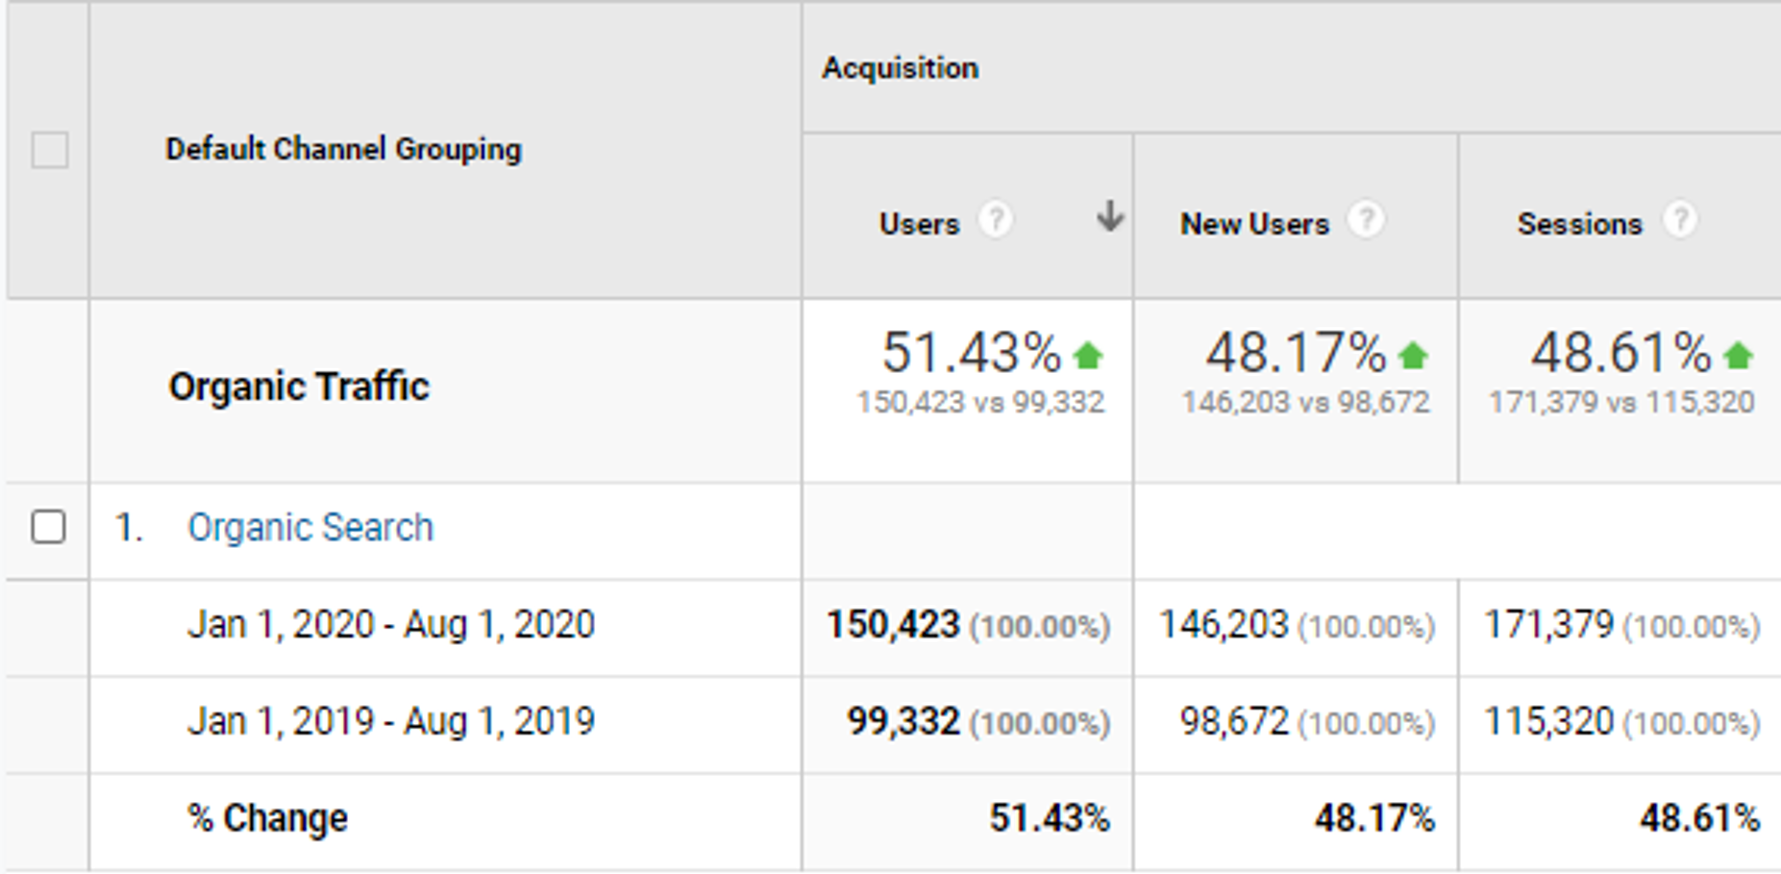 organic traffic increased by 51%